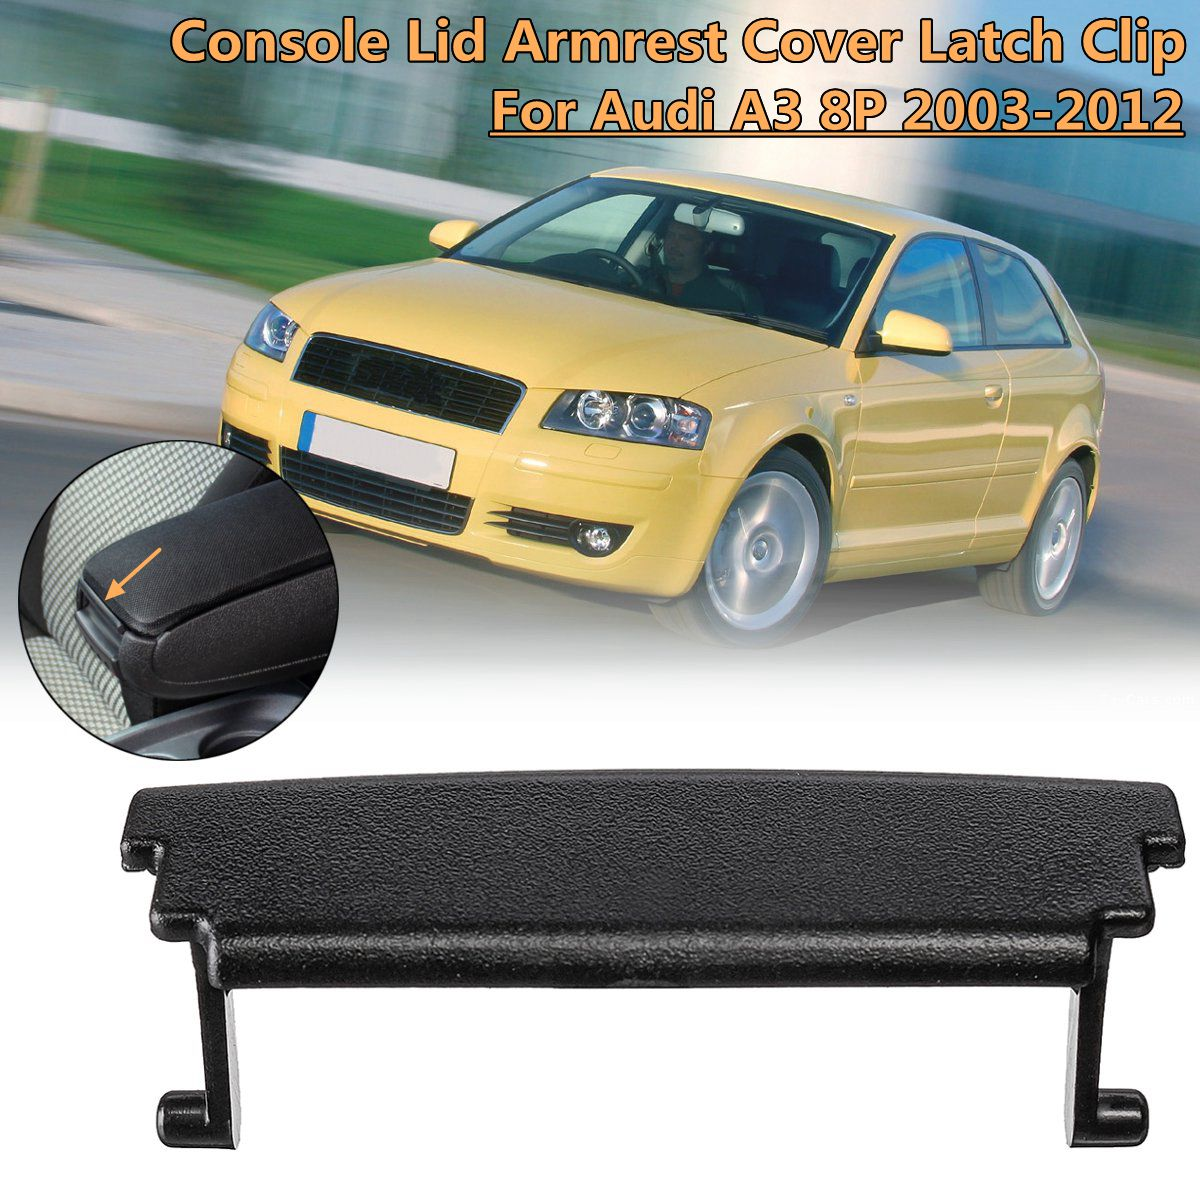 1Pc Plastic Center Console Lid Car Armrest Cover Latch Clip Cover Latch Clip Catch For Audi A3 8P 2003 2004 2005 2006 2007~2012(China)